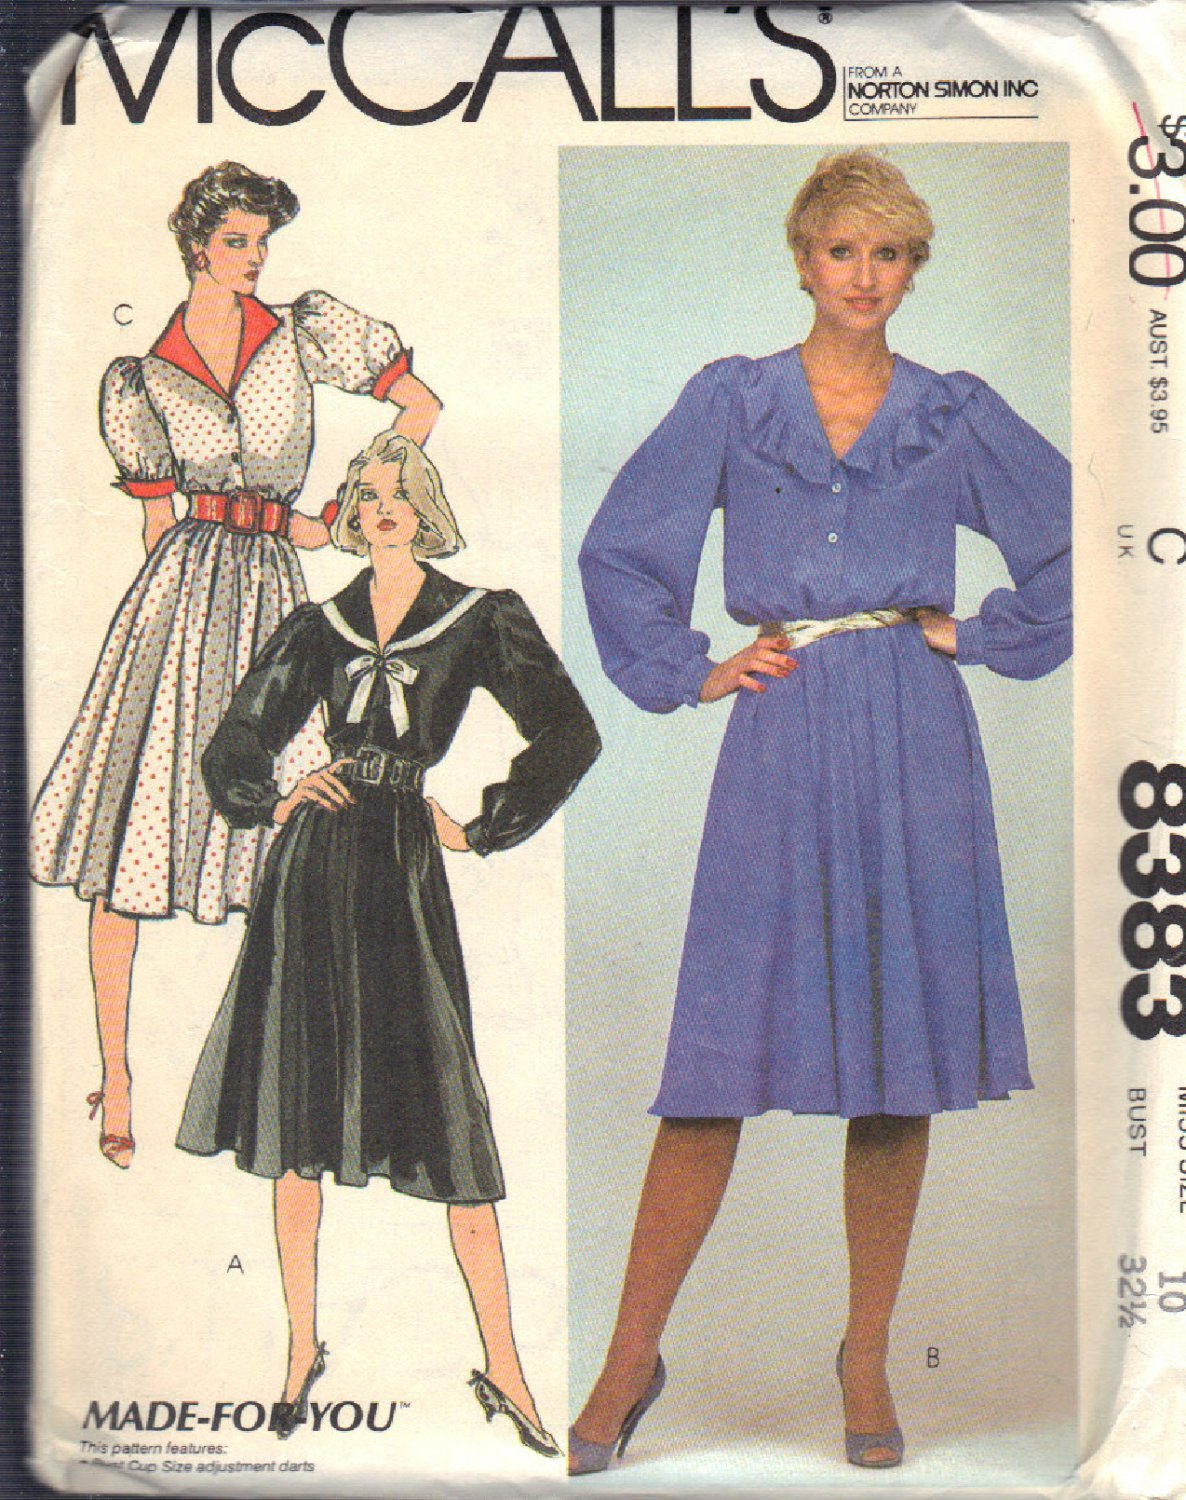 McCALL'S PATTERN 8383 DATED 1983 SIZE 10 MISSES' DRESS IN THREE VERSIONS